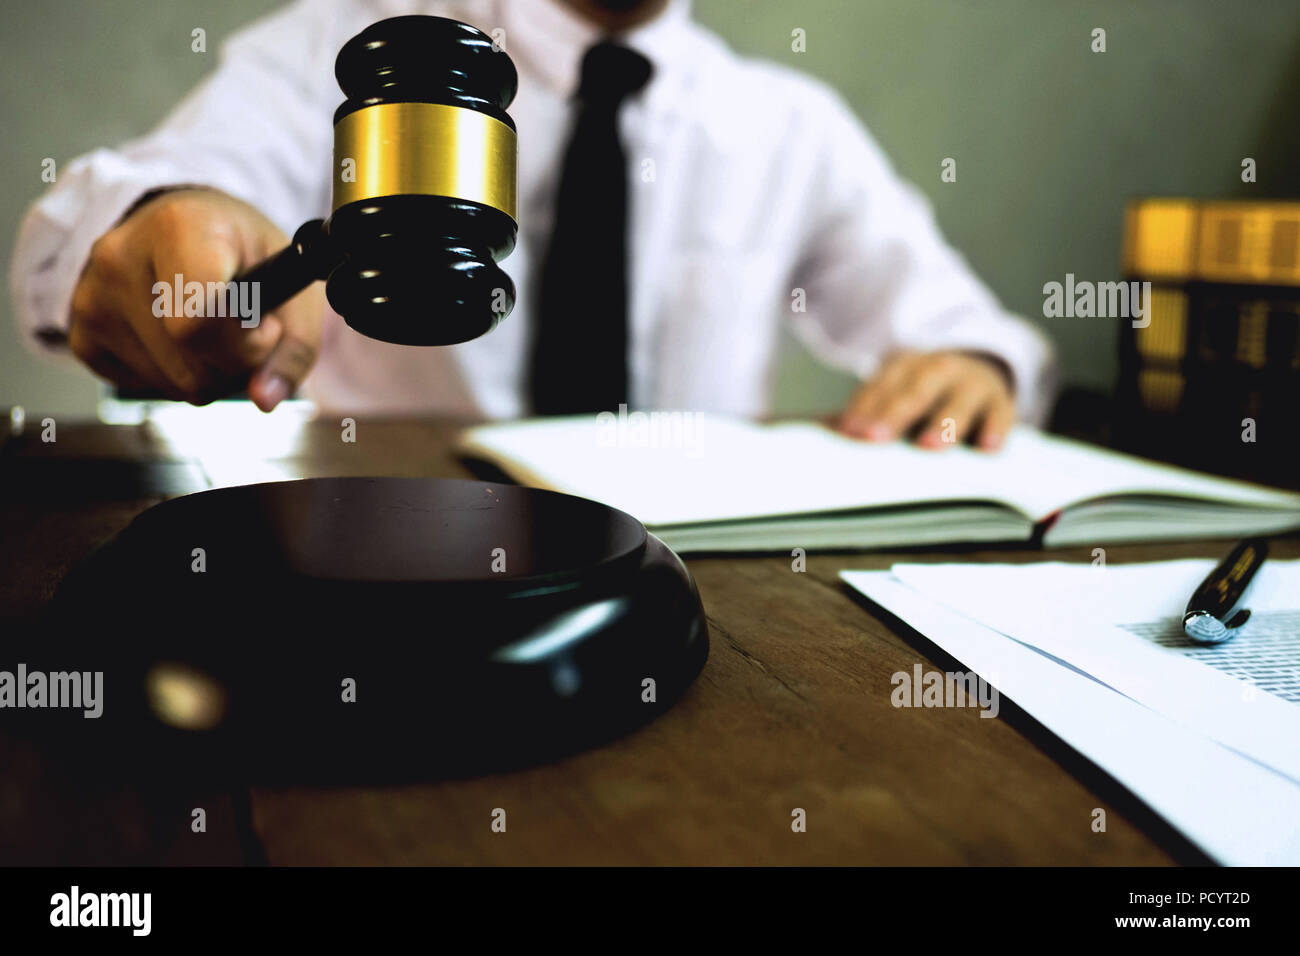 Judge with gavel on table. attorney, court judge,tribunal and justice concept. - Stock Image